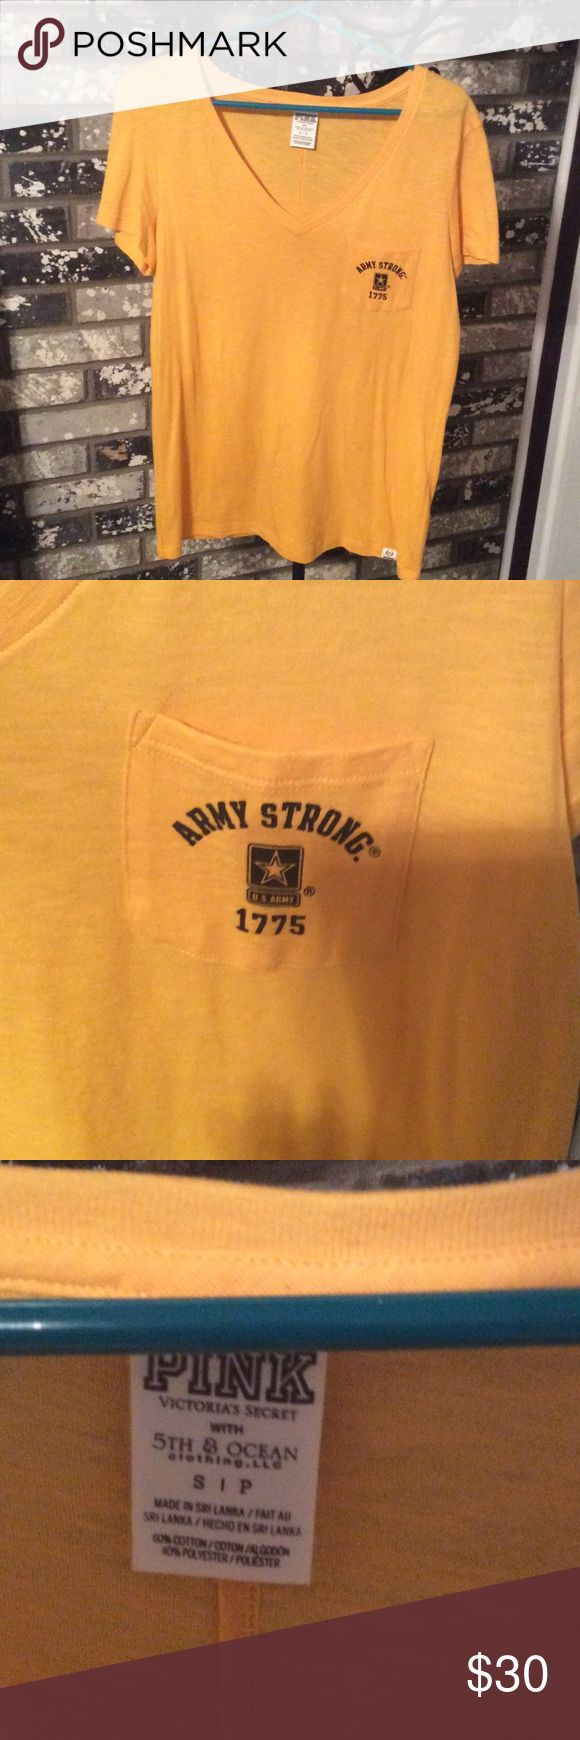 Nwot Pink US Army tee!!✨😳 Army Strong Victoria Secret pink v neck tee. Never worn. Nwot!! Can no longer get this in stores. It's a bright golden yellow. Price is firm unless bundled!! Runs large. Would fit a medium very well and perhaps even a large if you want it tighter. PINK Victoria's Secret Tops Tees - Short Sleeve